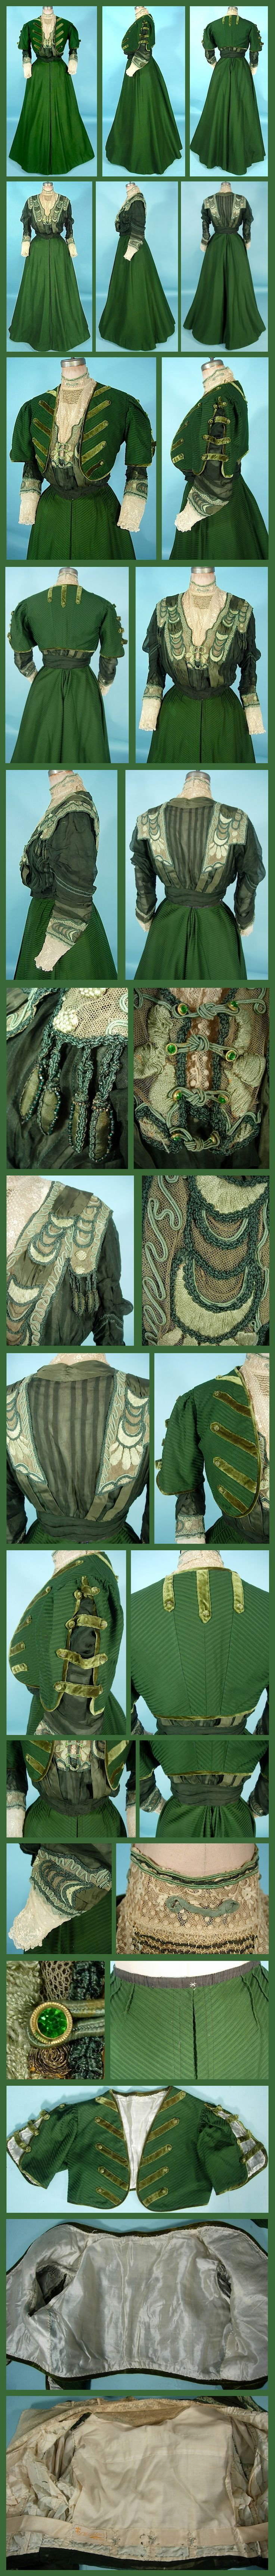 c. 1906/1907 A. H. METZNER, New York Green Ottoman Silk/Wool Fabric and Lace Trim 3-piece Afternoon Gown with Original Blouse. From antiquedress.com